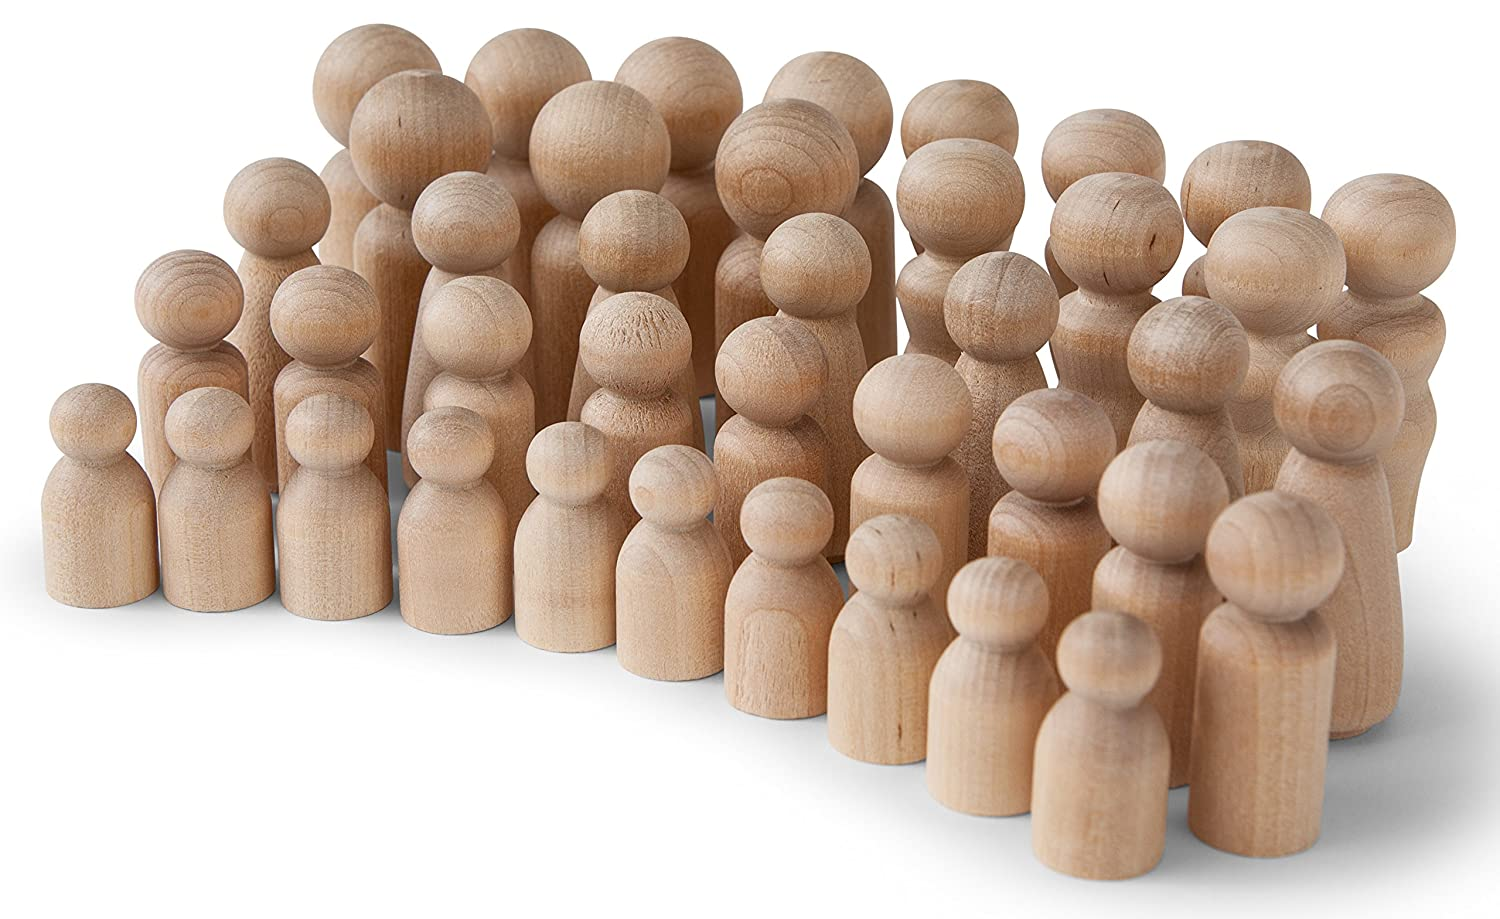 Great for Arts and Crafts Artist Set of 40 in 5 Different Shapes and Sizes Quality People Shapes Koalabu Natural Unfinished Wooden Peg Doll Bodies Birch and Maple Wood Turnings